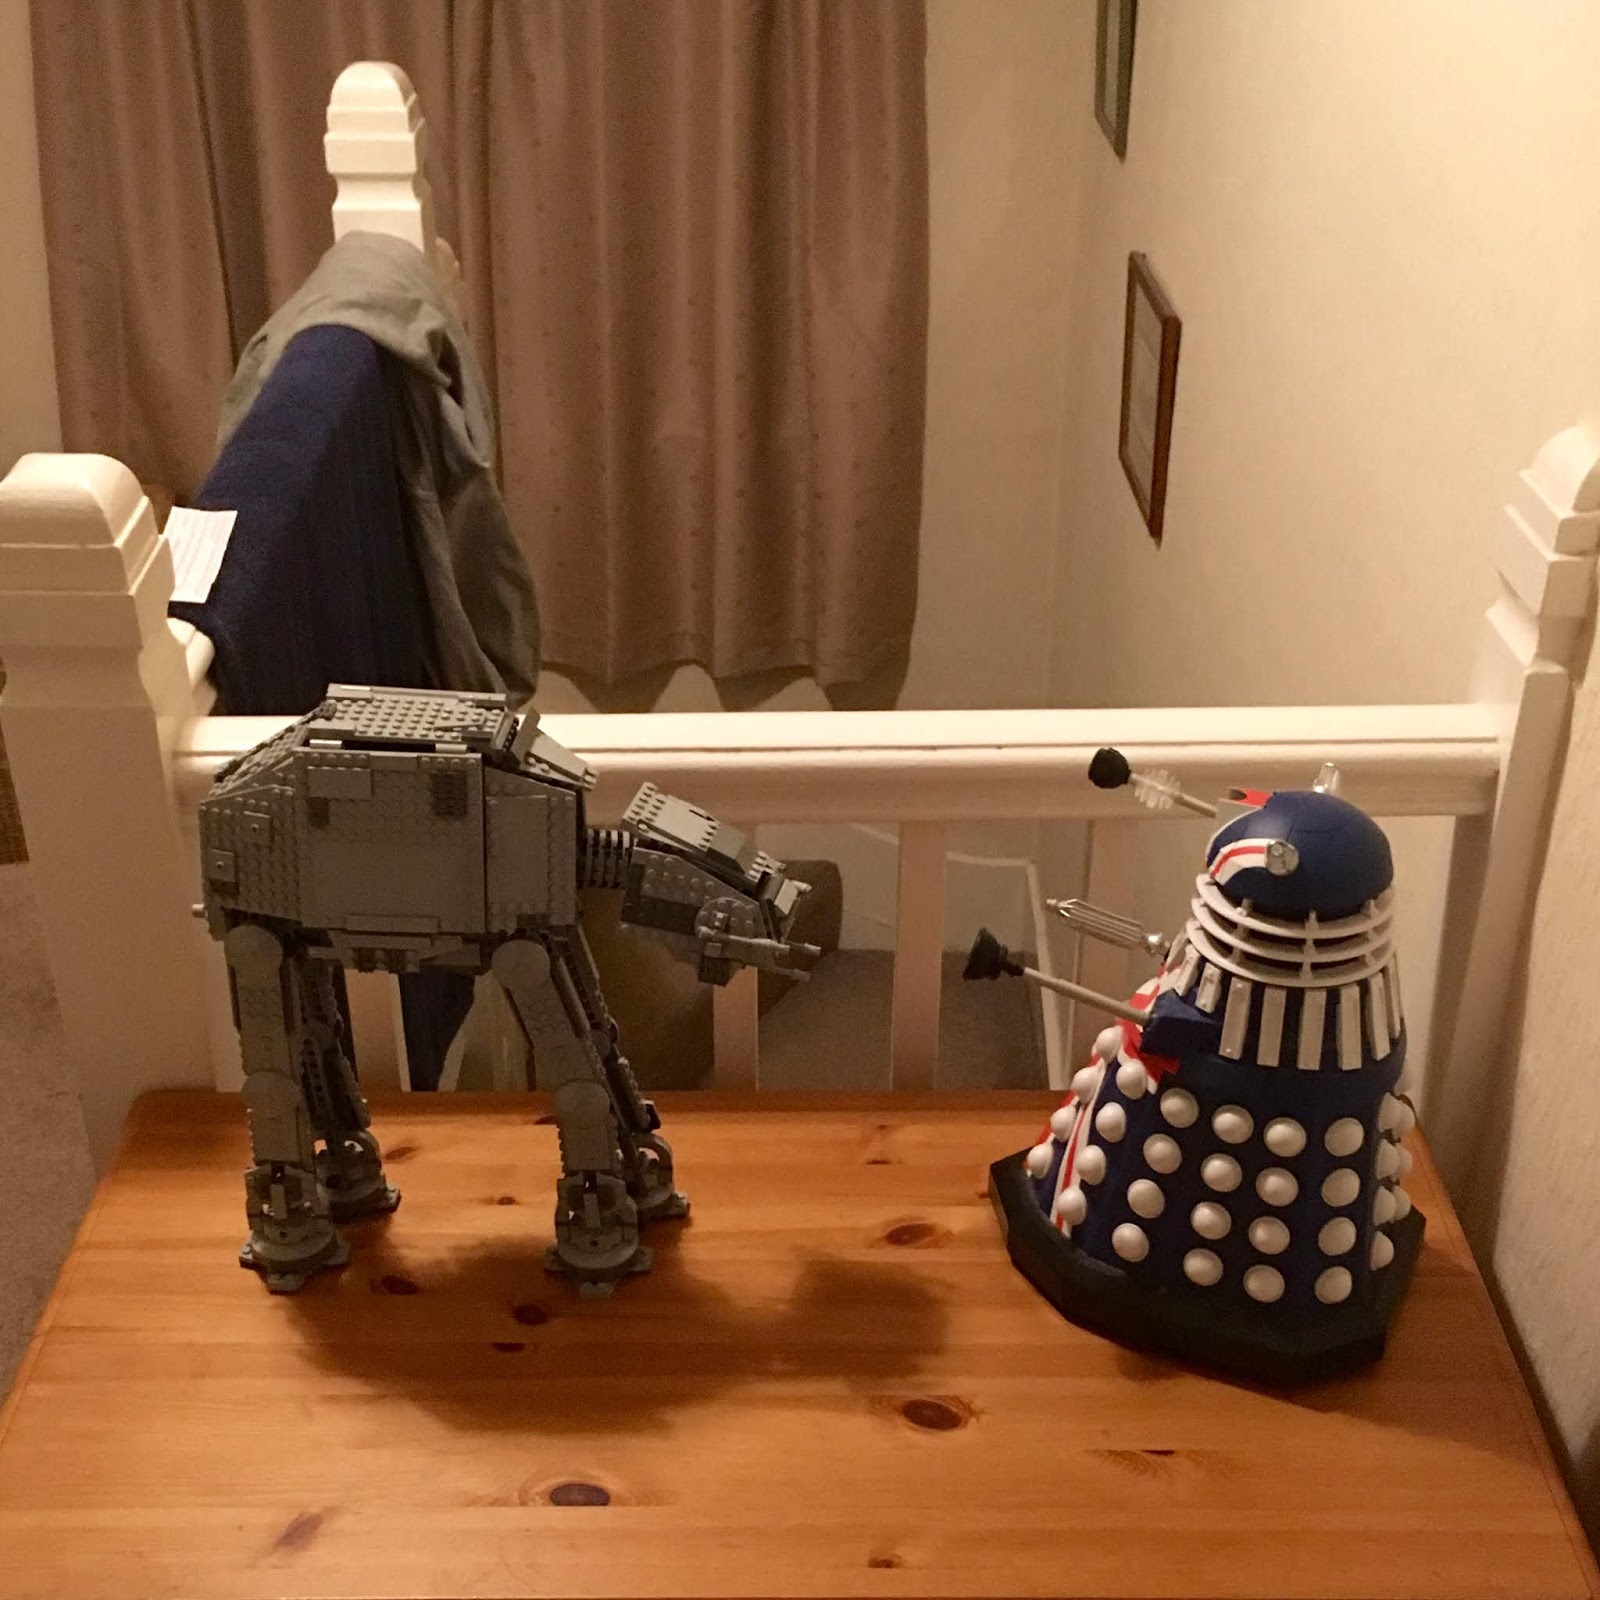 Derek the Dalek and Stars Wars Lego